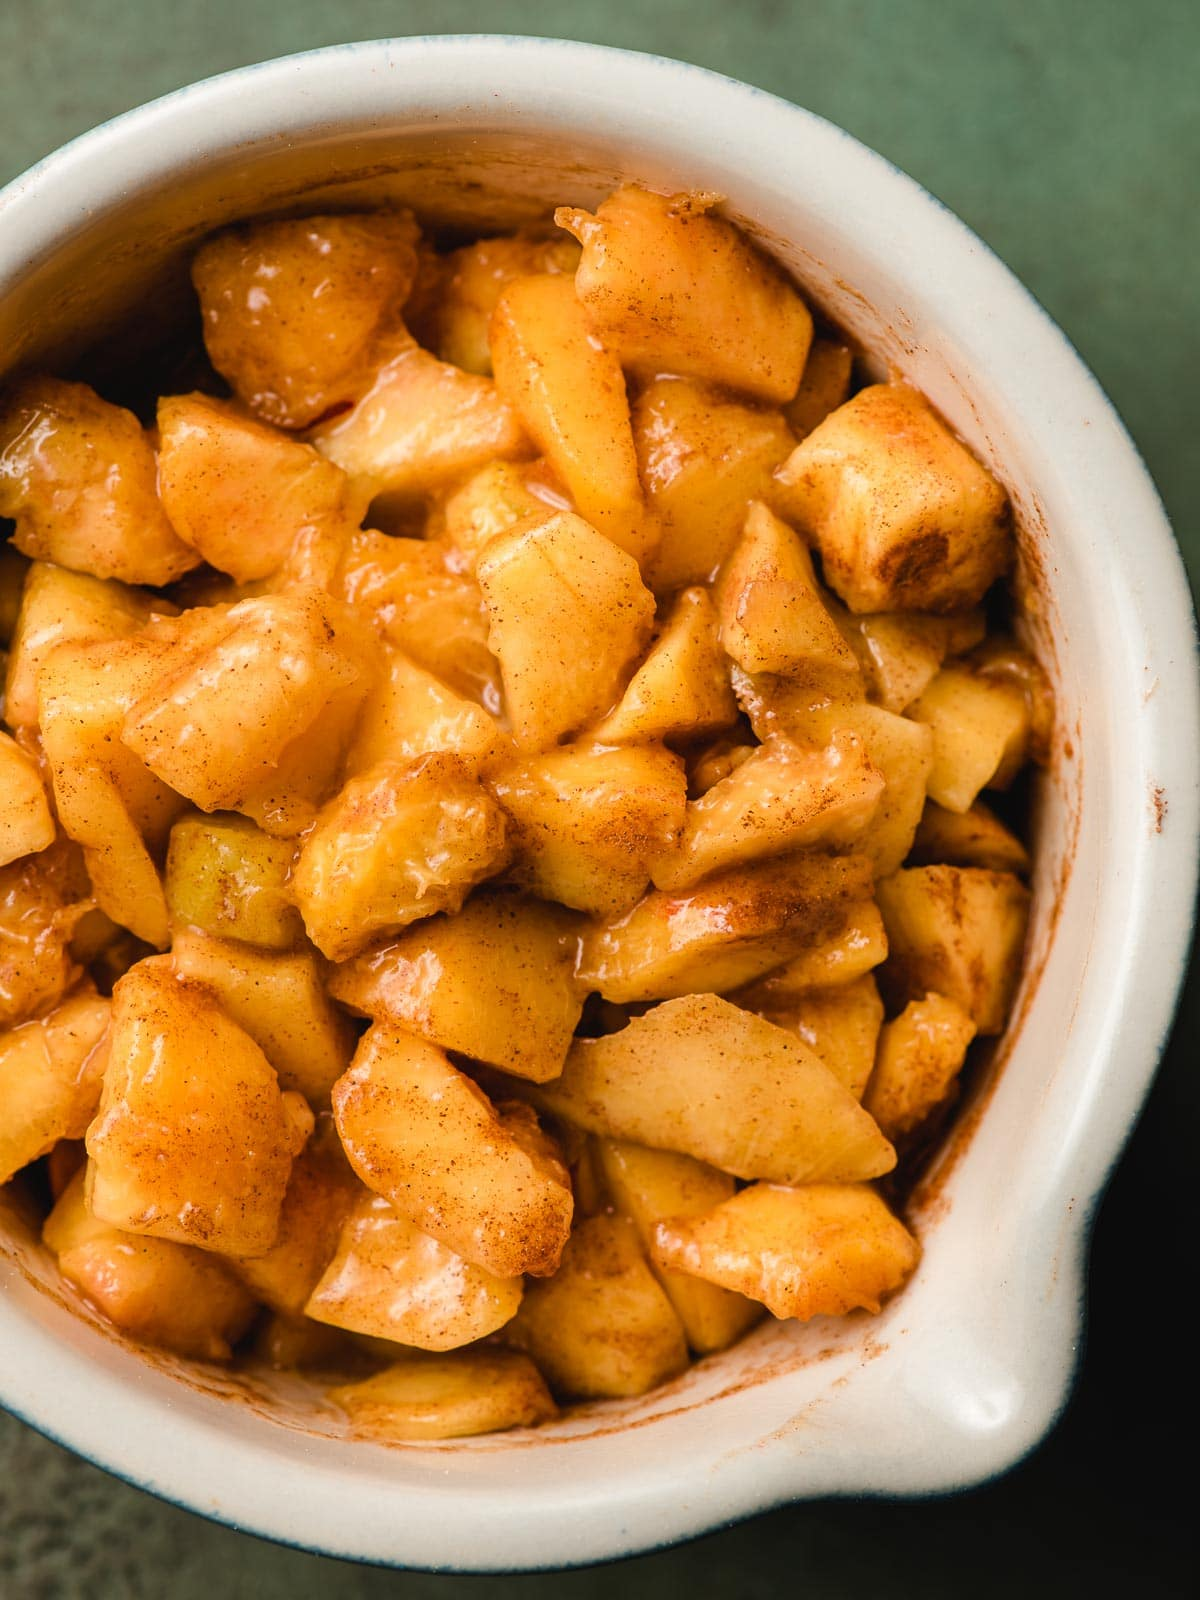 Bowl of fresh diced peaches with cinnamon.